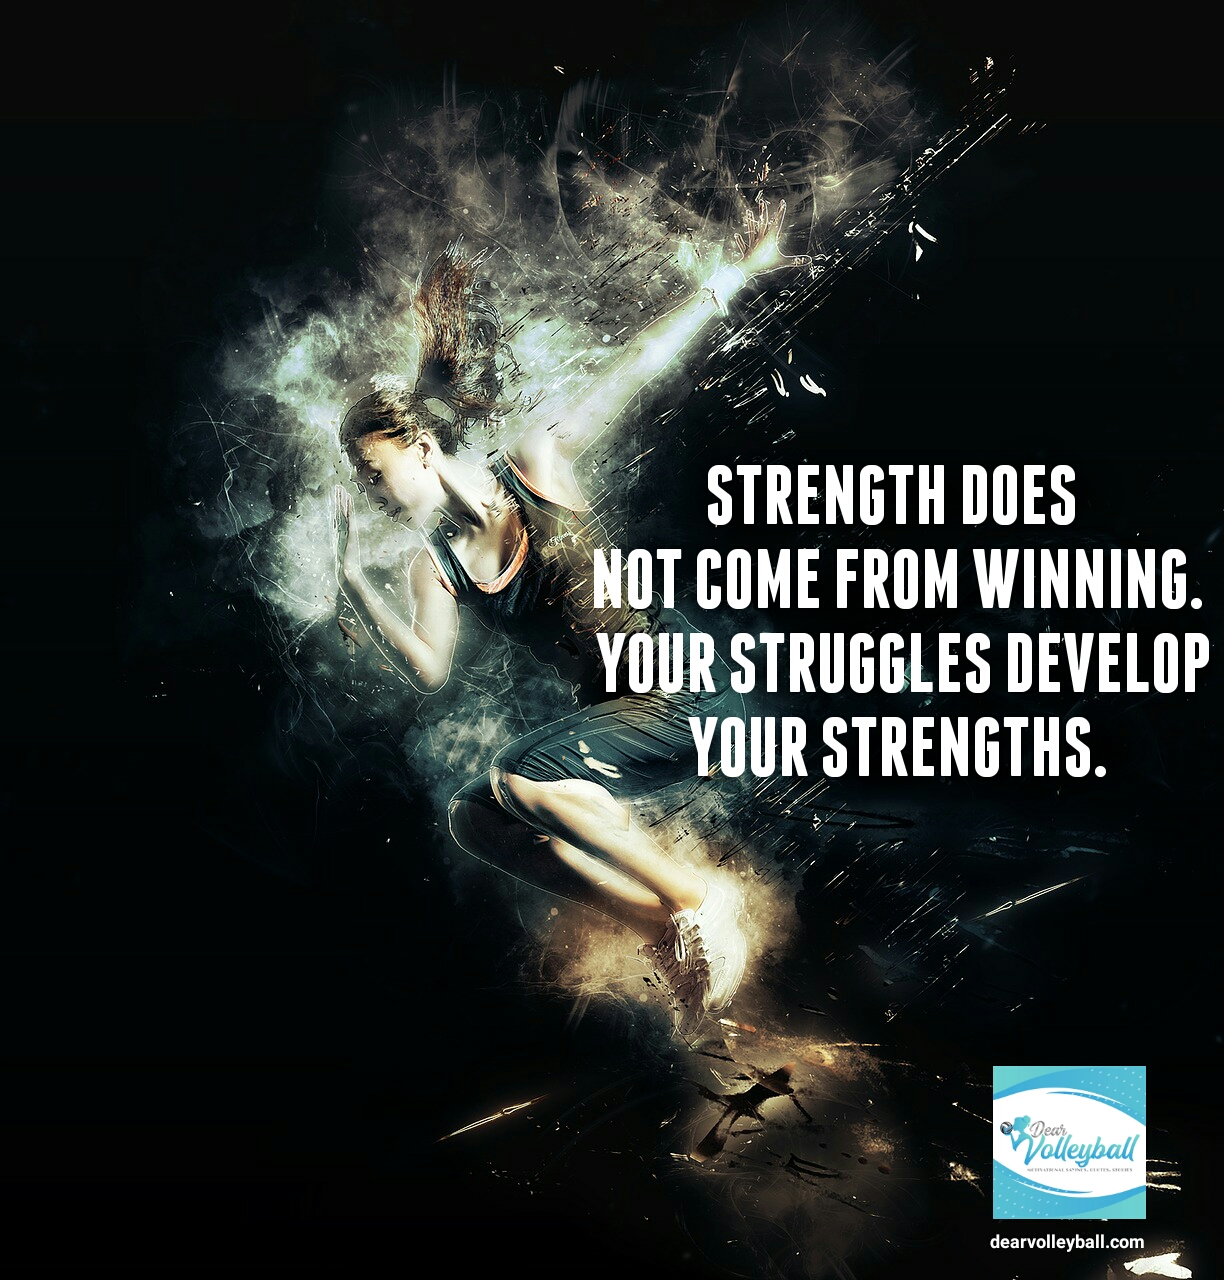 Strength does not come from winning. Your struggles develop your strengths and 75 other volleyball inspirational quotes on Dear Volleyball.com